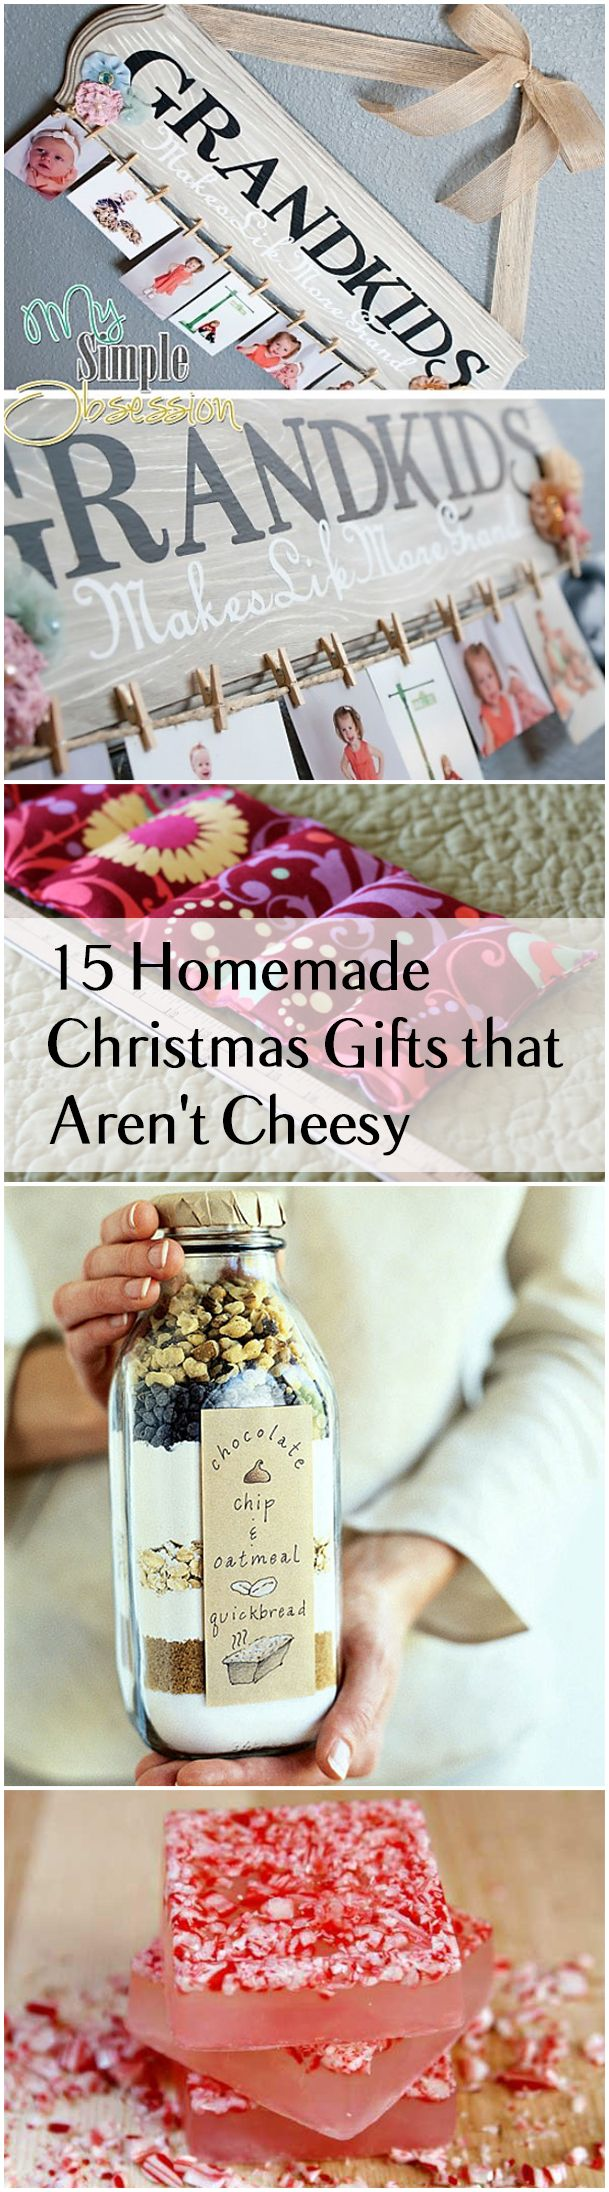 15 homemade christmas gifts that aren u0027t cheesy homemade